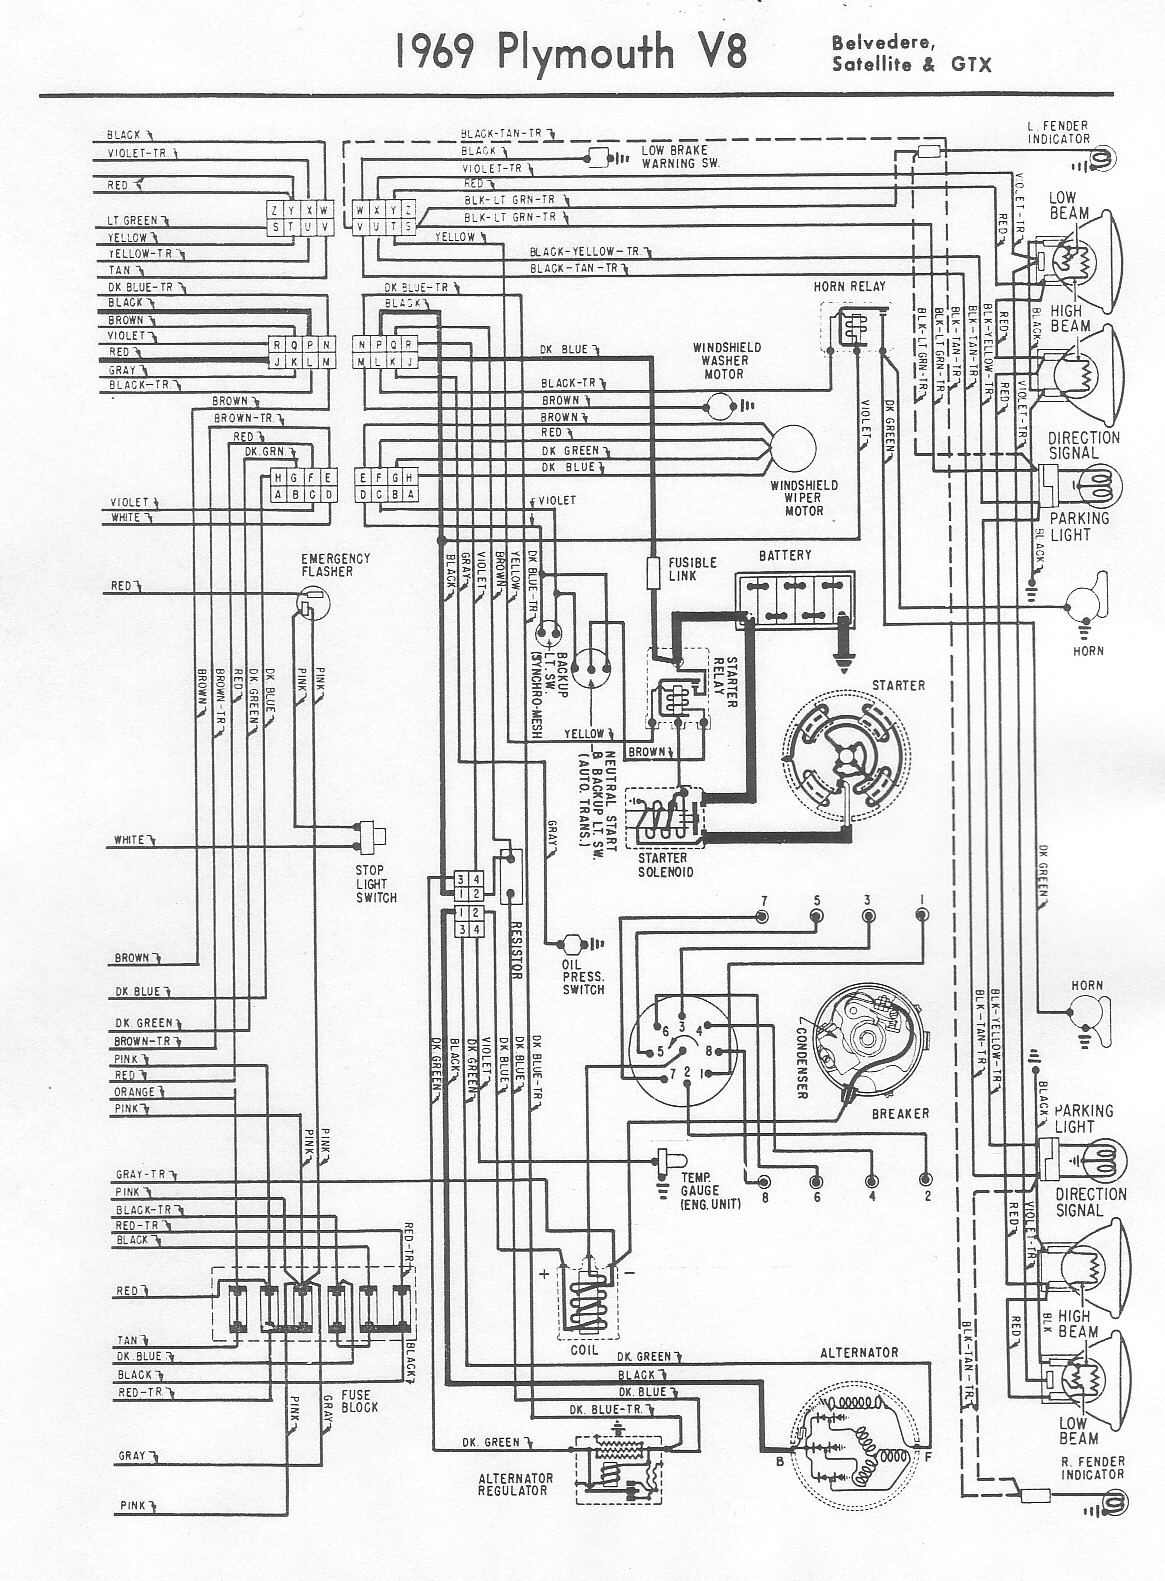 1969 Chevy Headlight Switch Wiring | Wiring Diagram Automotive on fan motor diagram, 3 wire pc fan wiring diagram, 4-wire oxygen sensor diagram, ceiling fan diagram, hunter fan diagram, 4-wire thermostat diagram, electric fan relay wiring diagram, fan limit diagram, capacitor diagram,